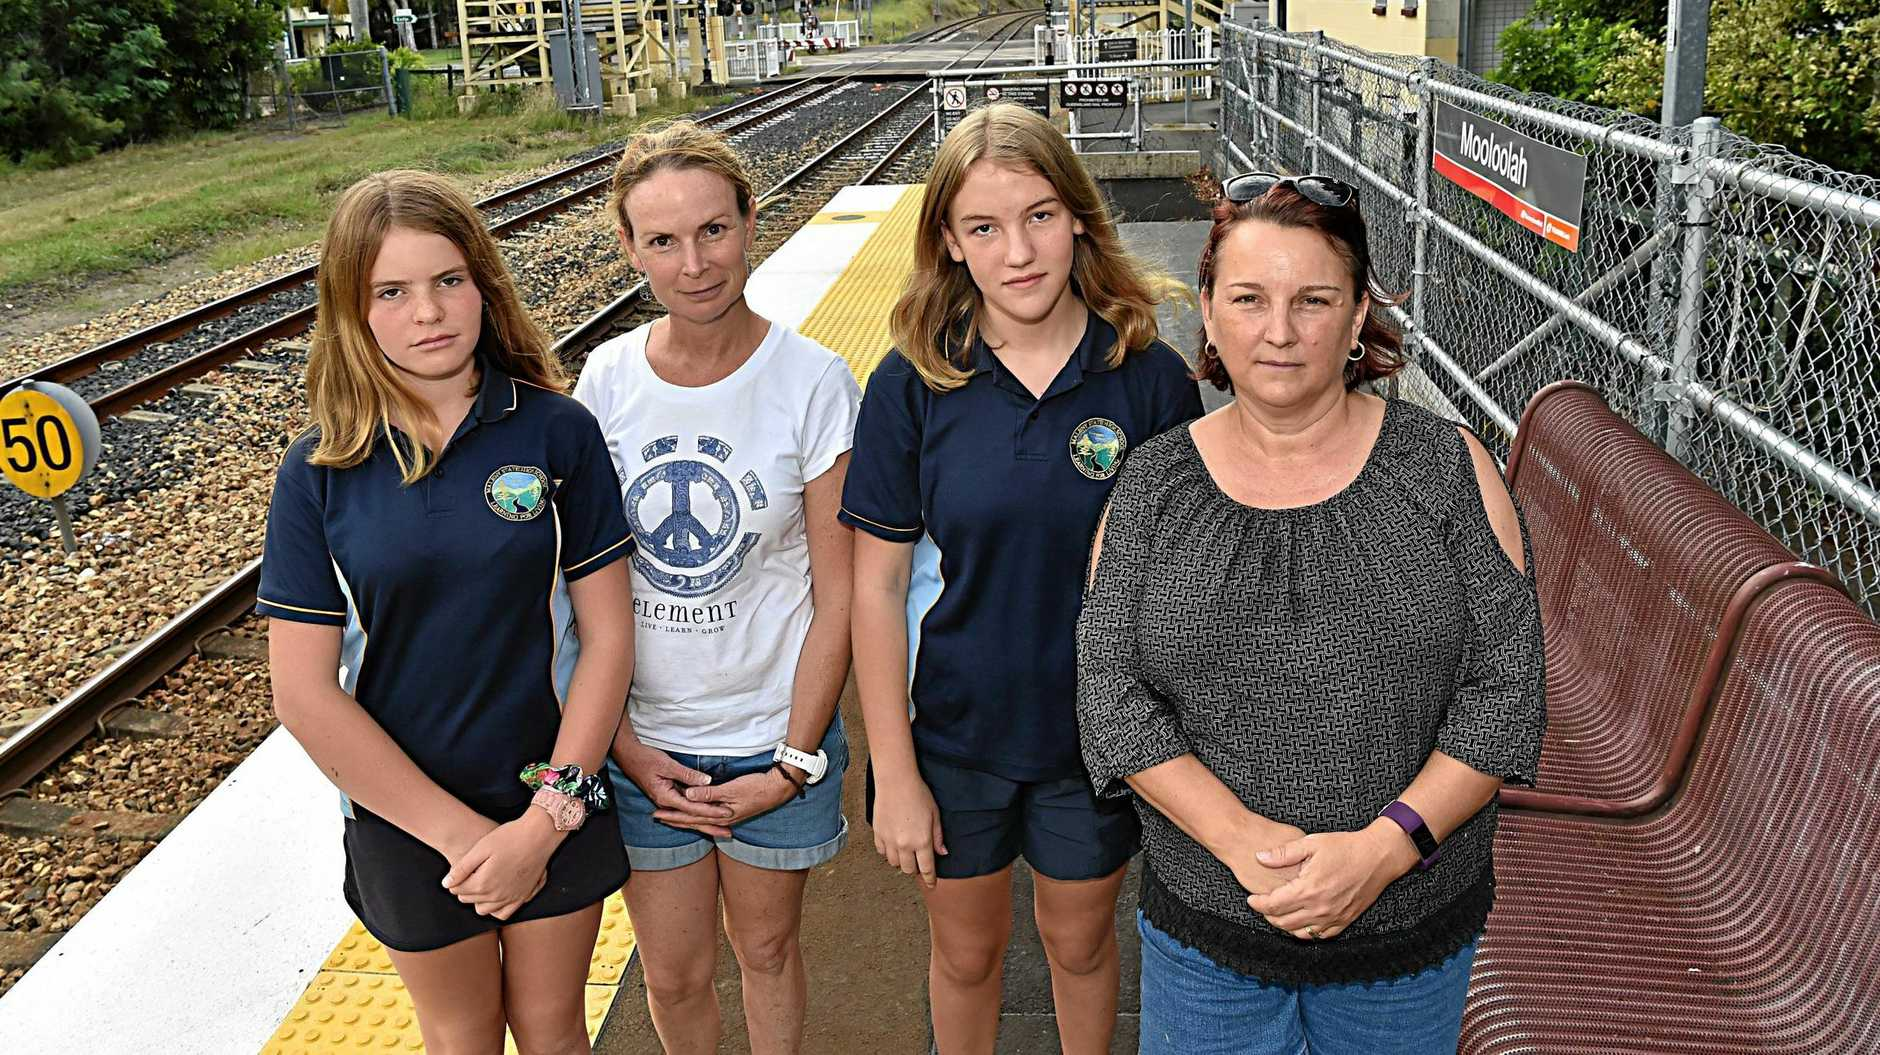 Mooloolah families struggling to send children on trains and buses to school in Maleny without financial assistance. Anna-Grace Scott, Rikki-Lee Scott, Caitlyn West and Lisa West at the Mooloolah Train Station.